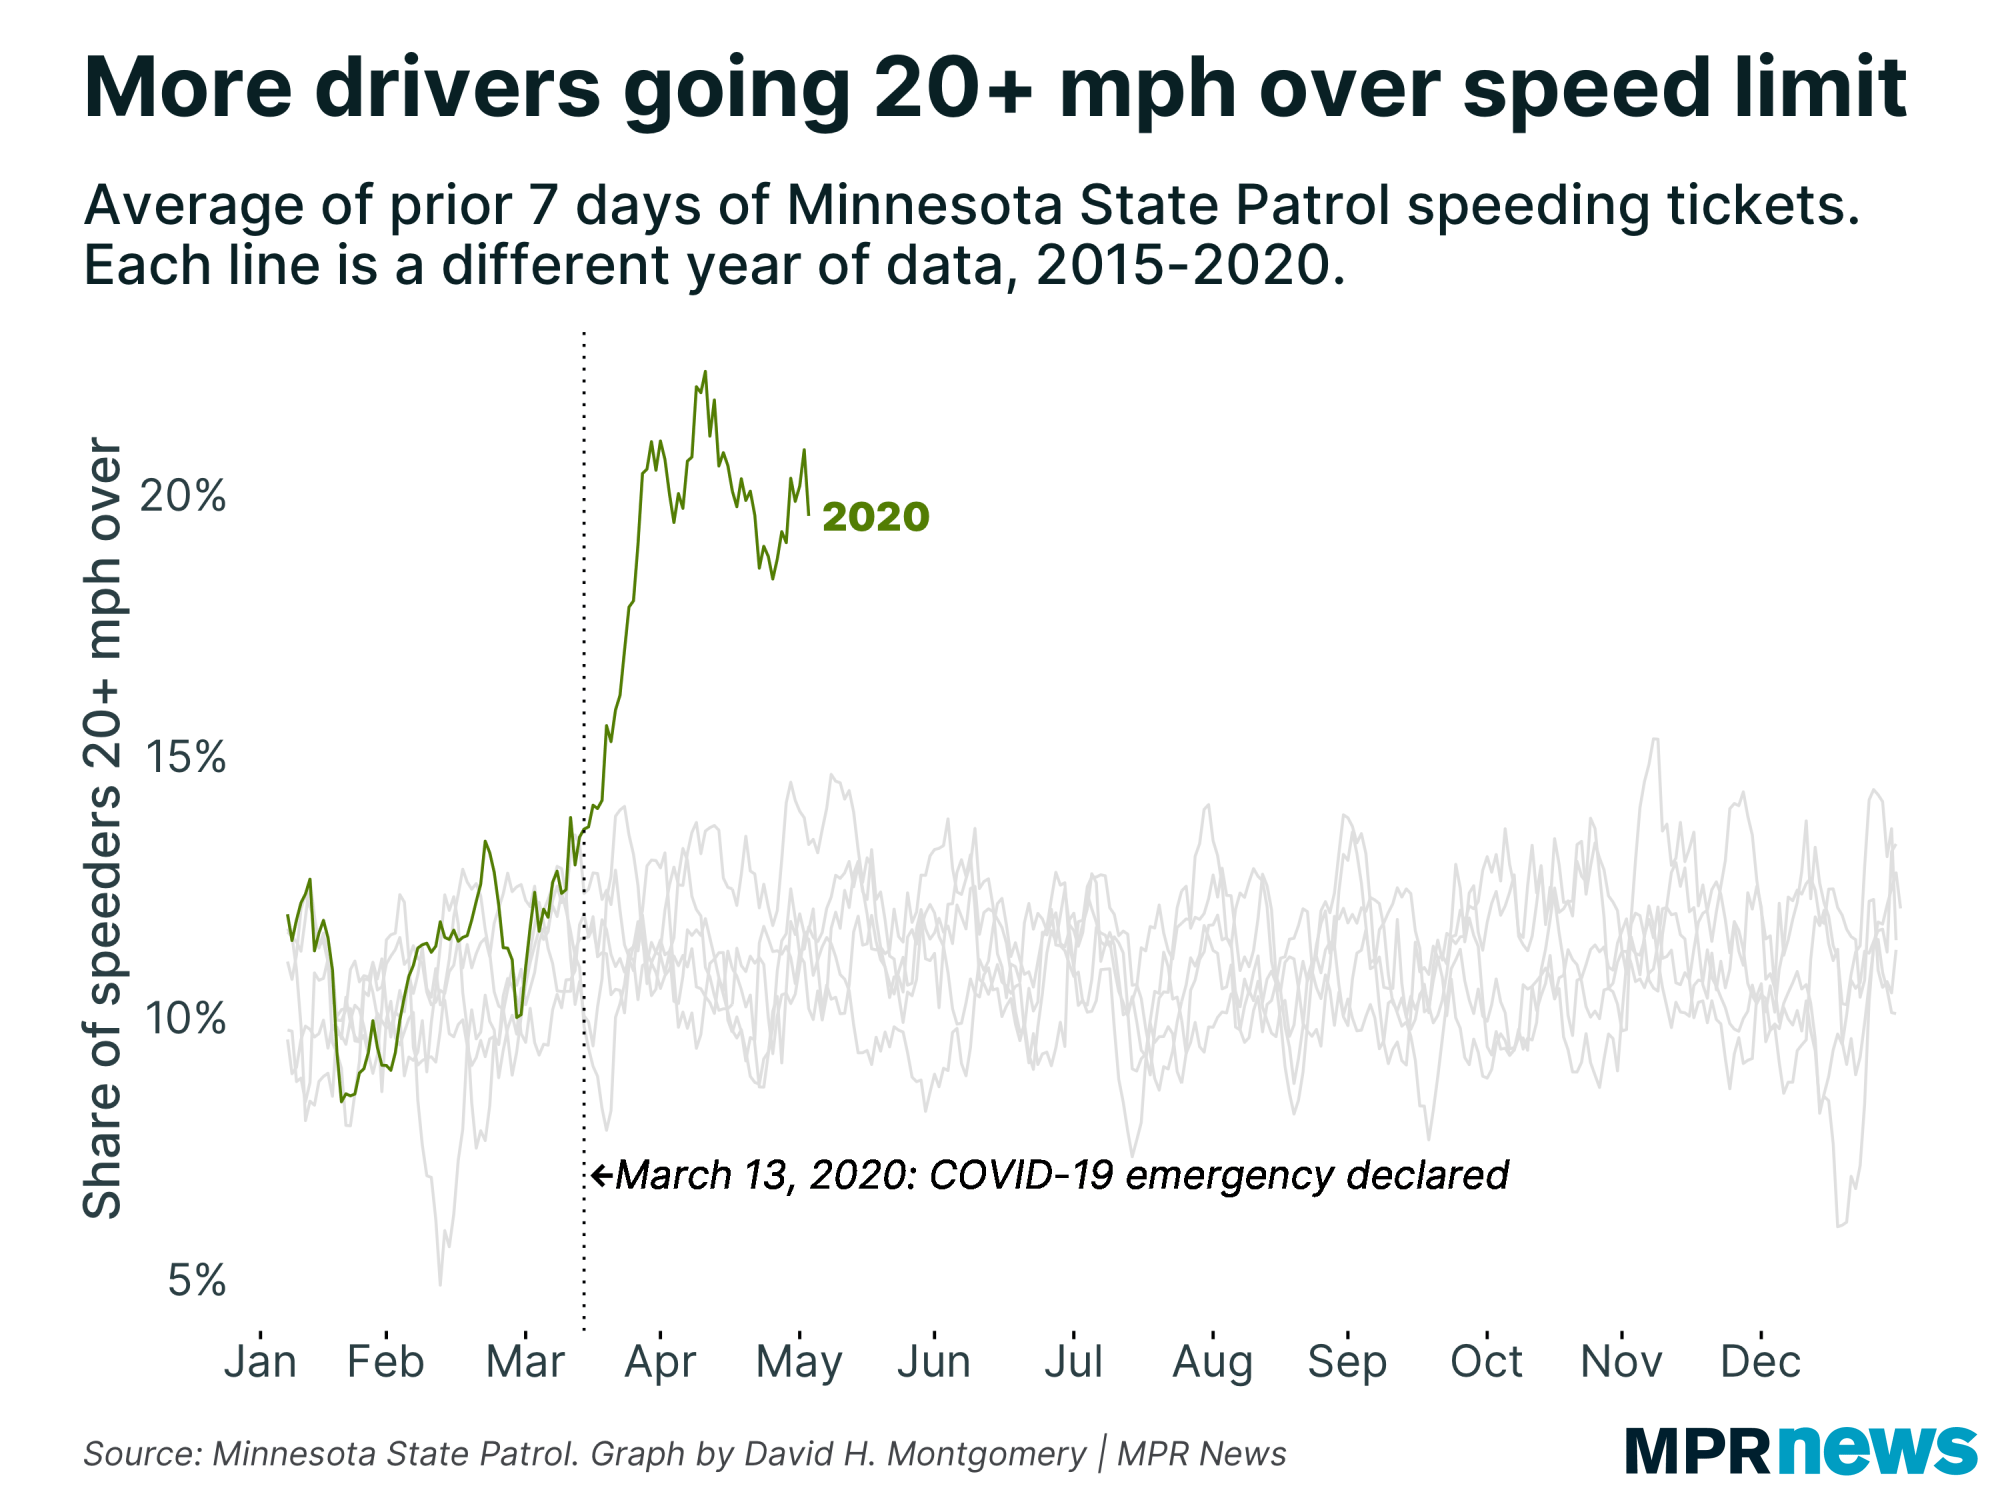 More Minnesota speeders are going 20 mph+ above the limit.